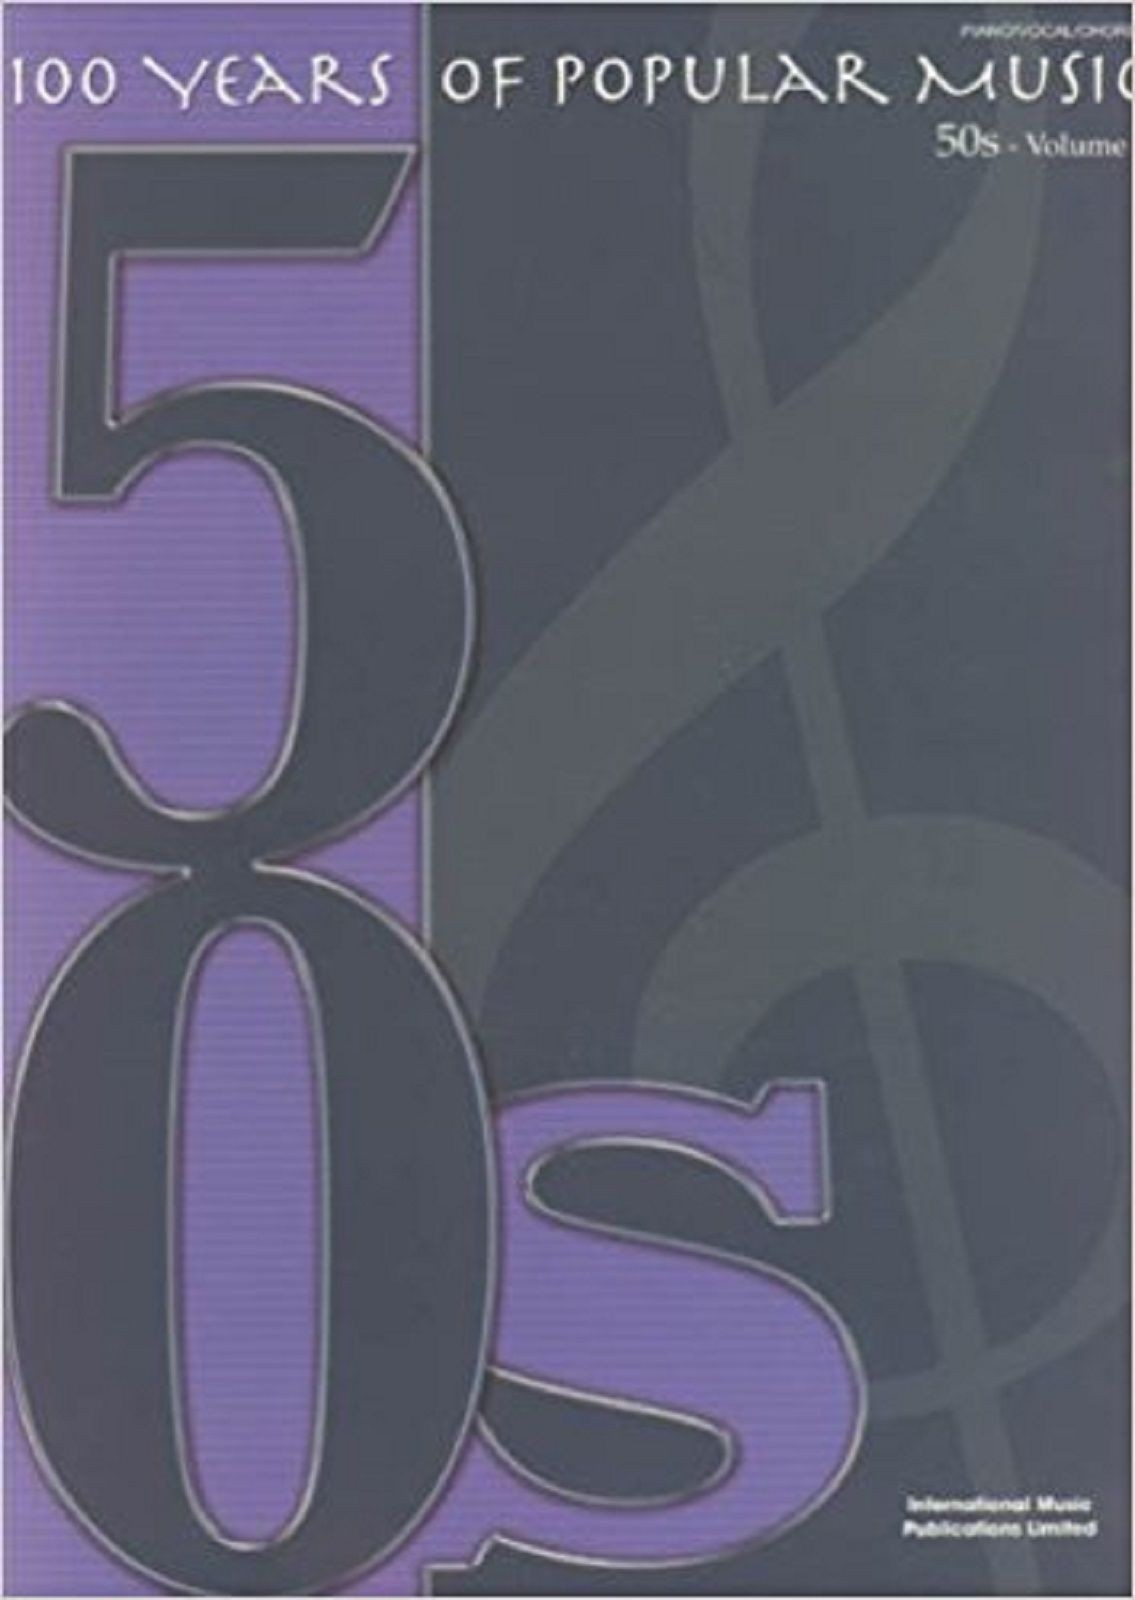 100 Years Of Popular Music 50s Volume 1 Piano Vocal Chords Sheet Music Book S138